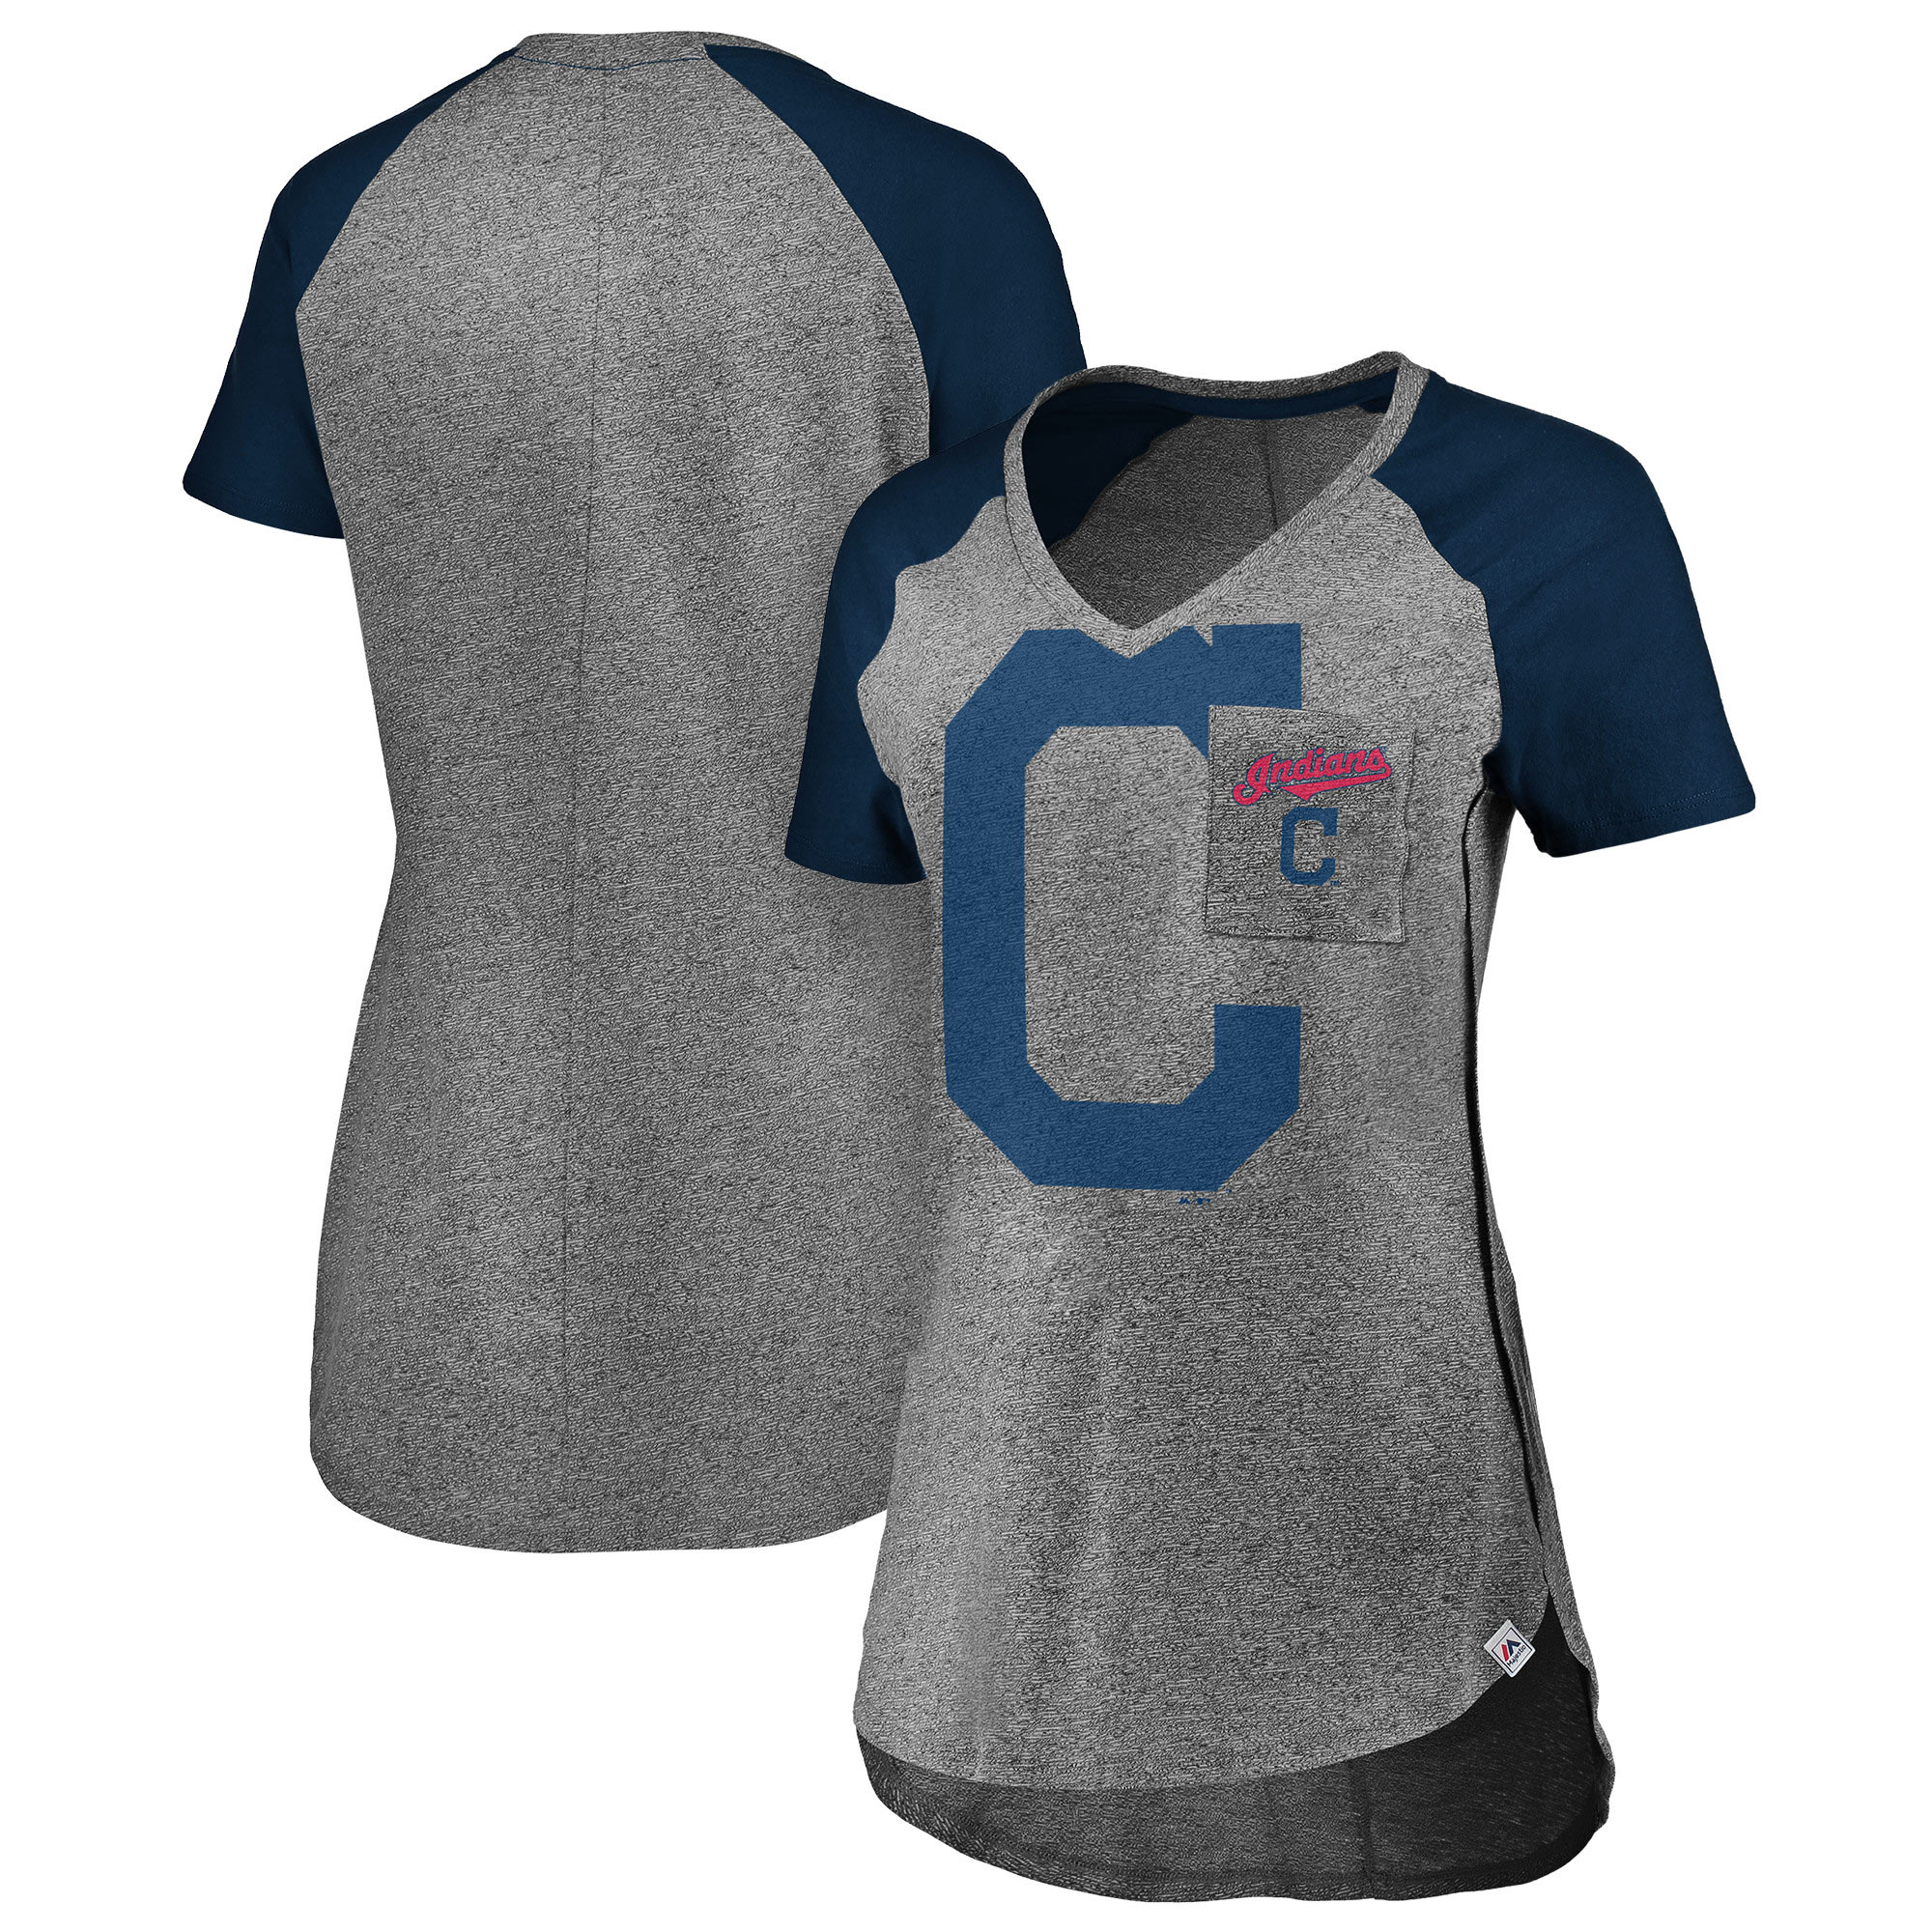 Cleveland Indians Majestic Women's Static Pocket Raglan V-Neck T-Shirt - Gray/Navy